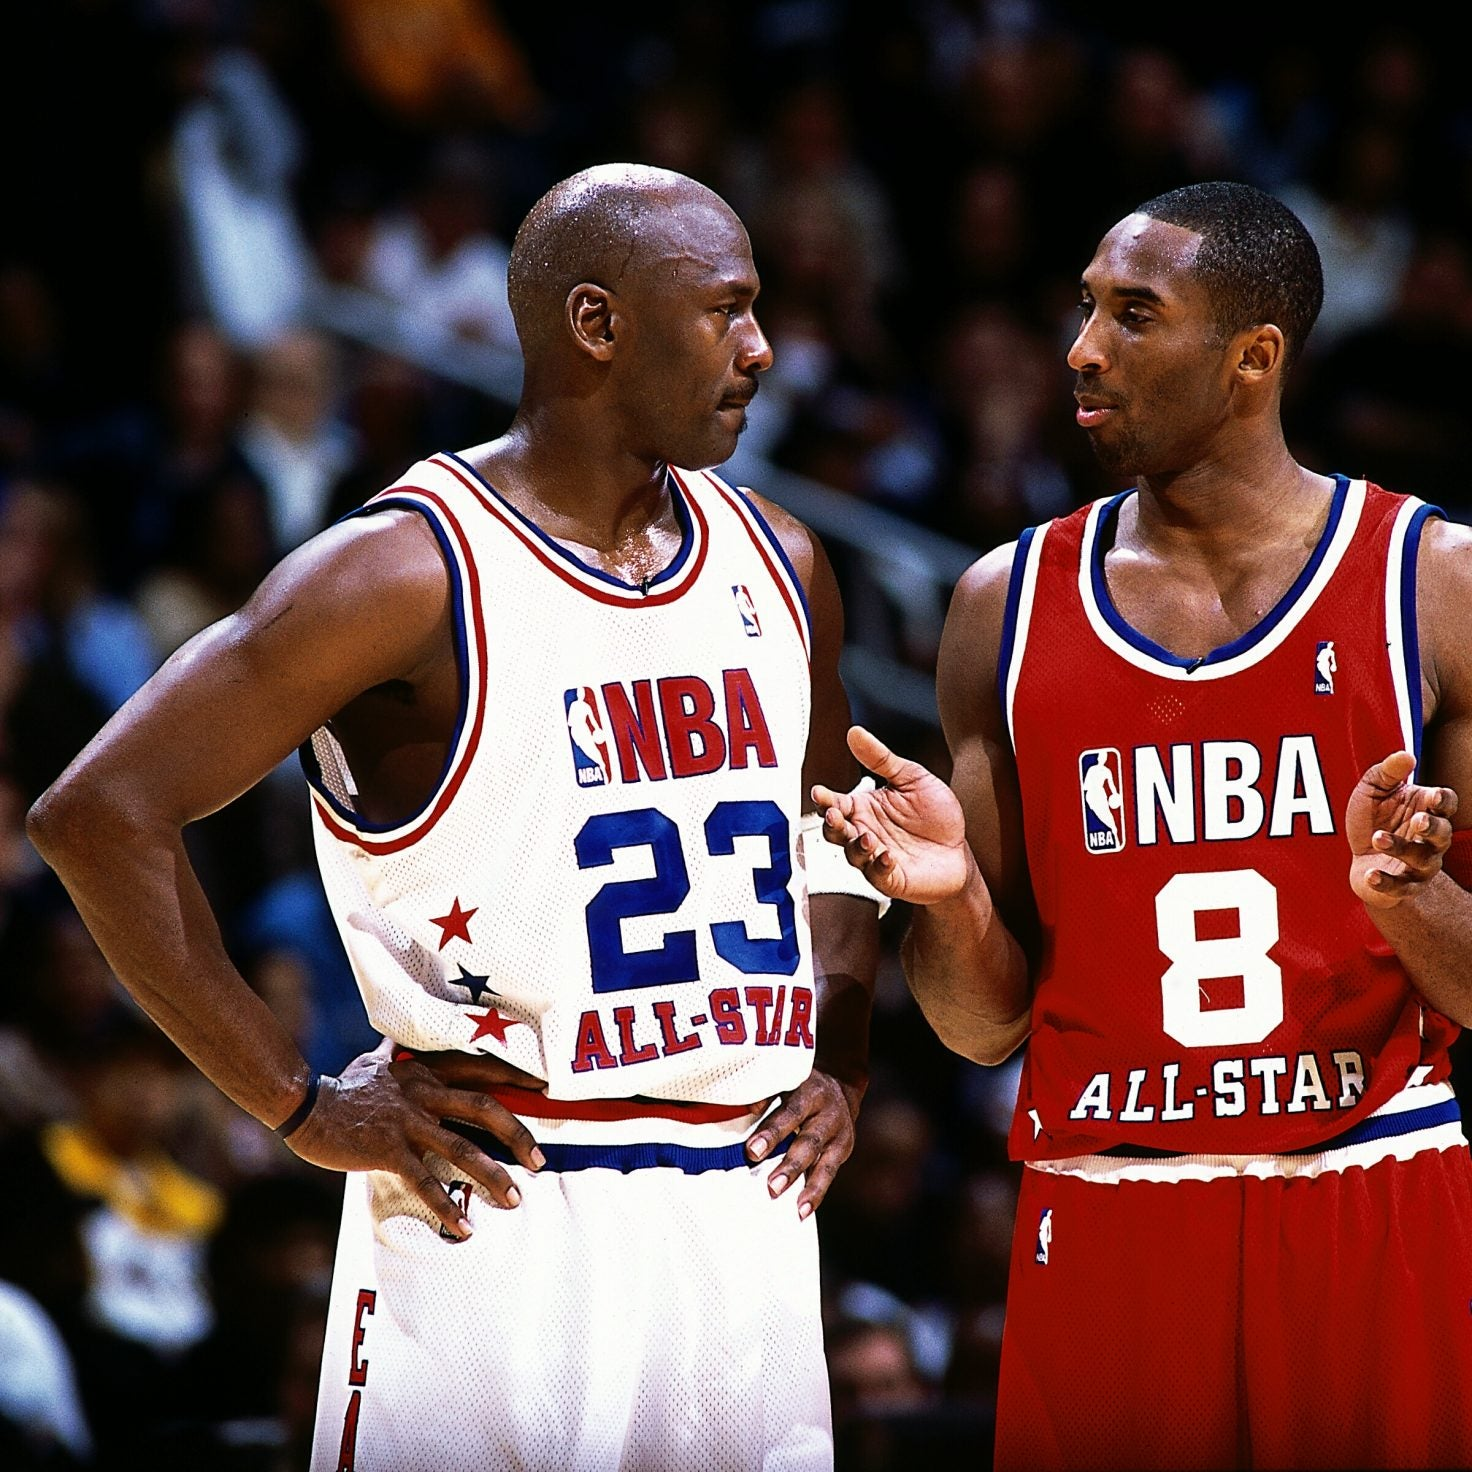 Kobe Bryant Praised Michael Jordan In 'The Last Dance' Before His Sudden Death